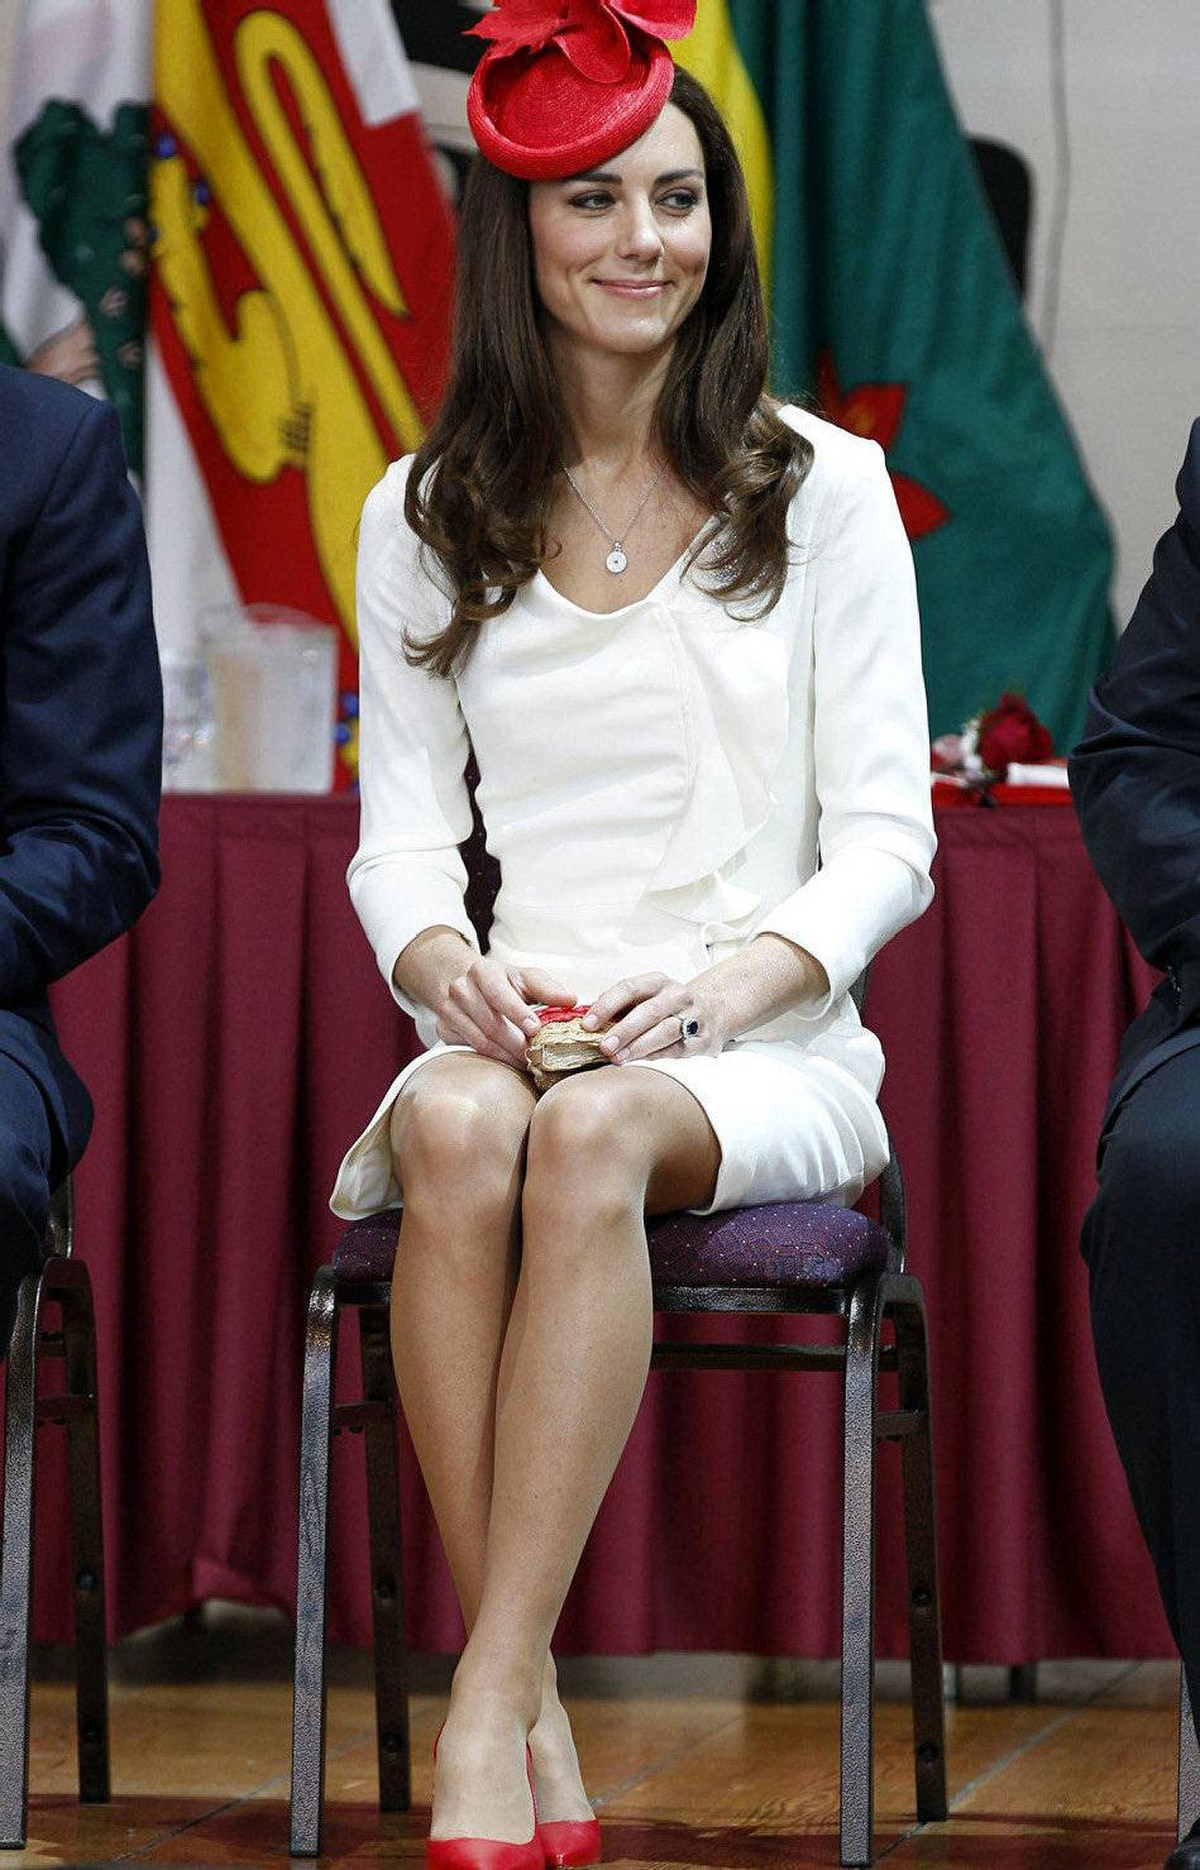 Catherine Middleton, the Duchess of Cambridge, attends a citizenship ceremony at the Canadian Museum of Civilization in Hull, Quebec near Ottawa July 1, 2011.